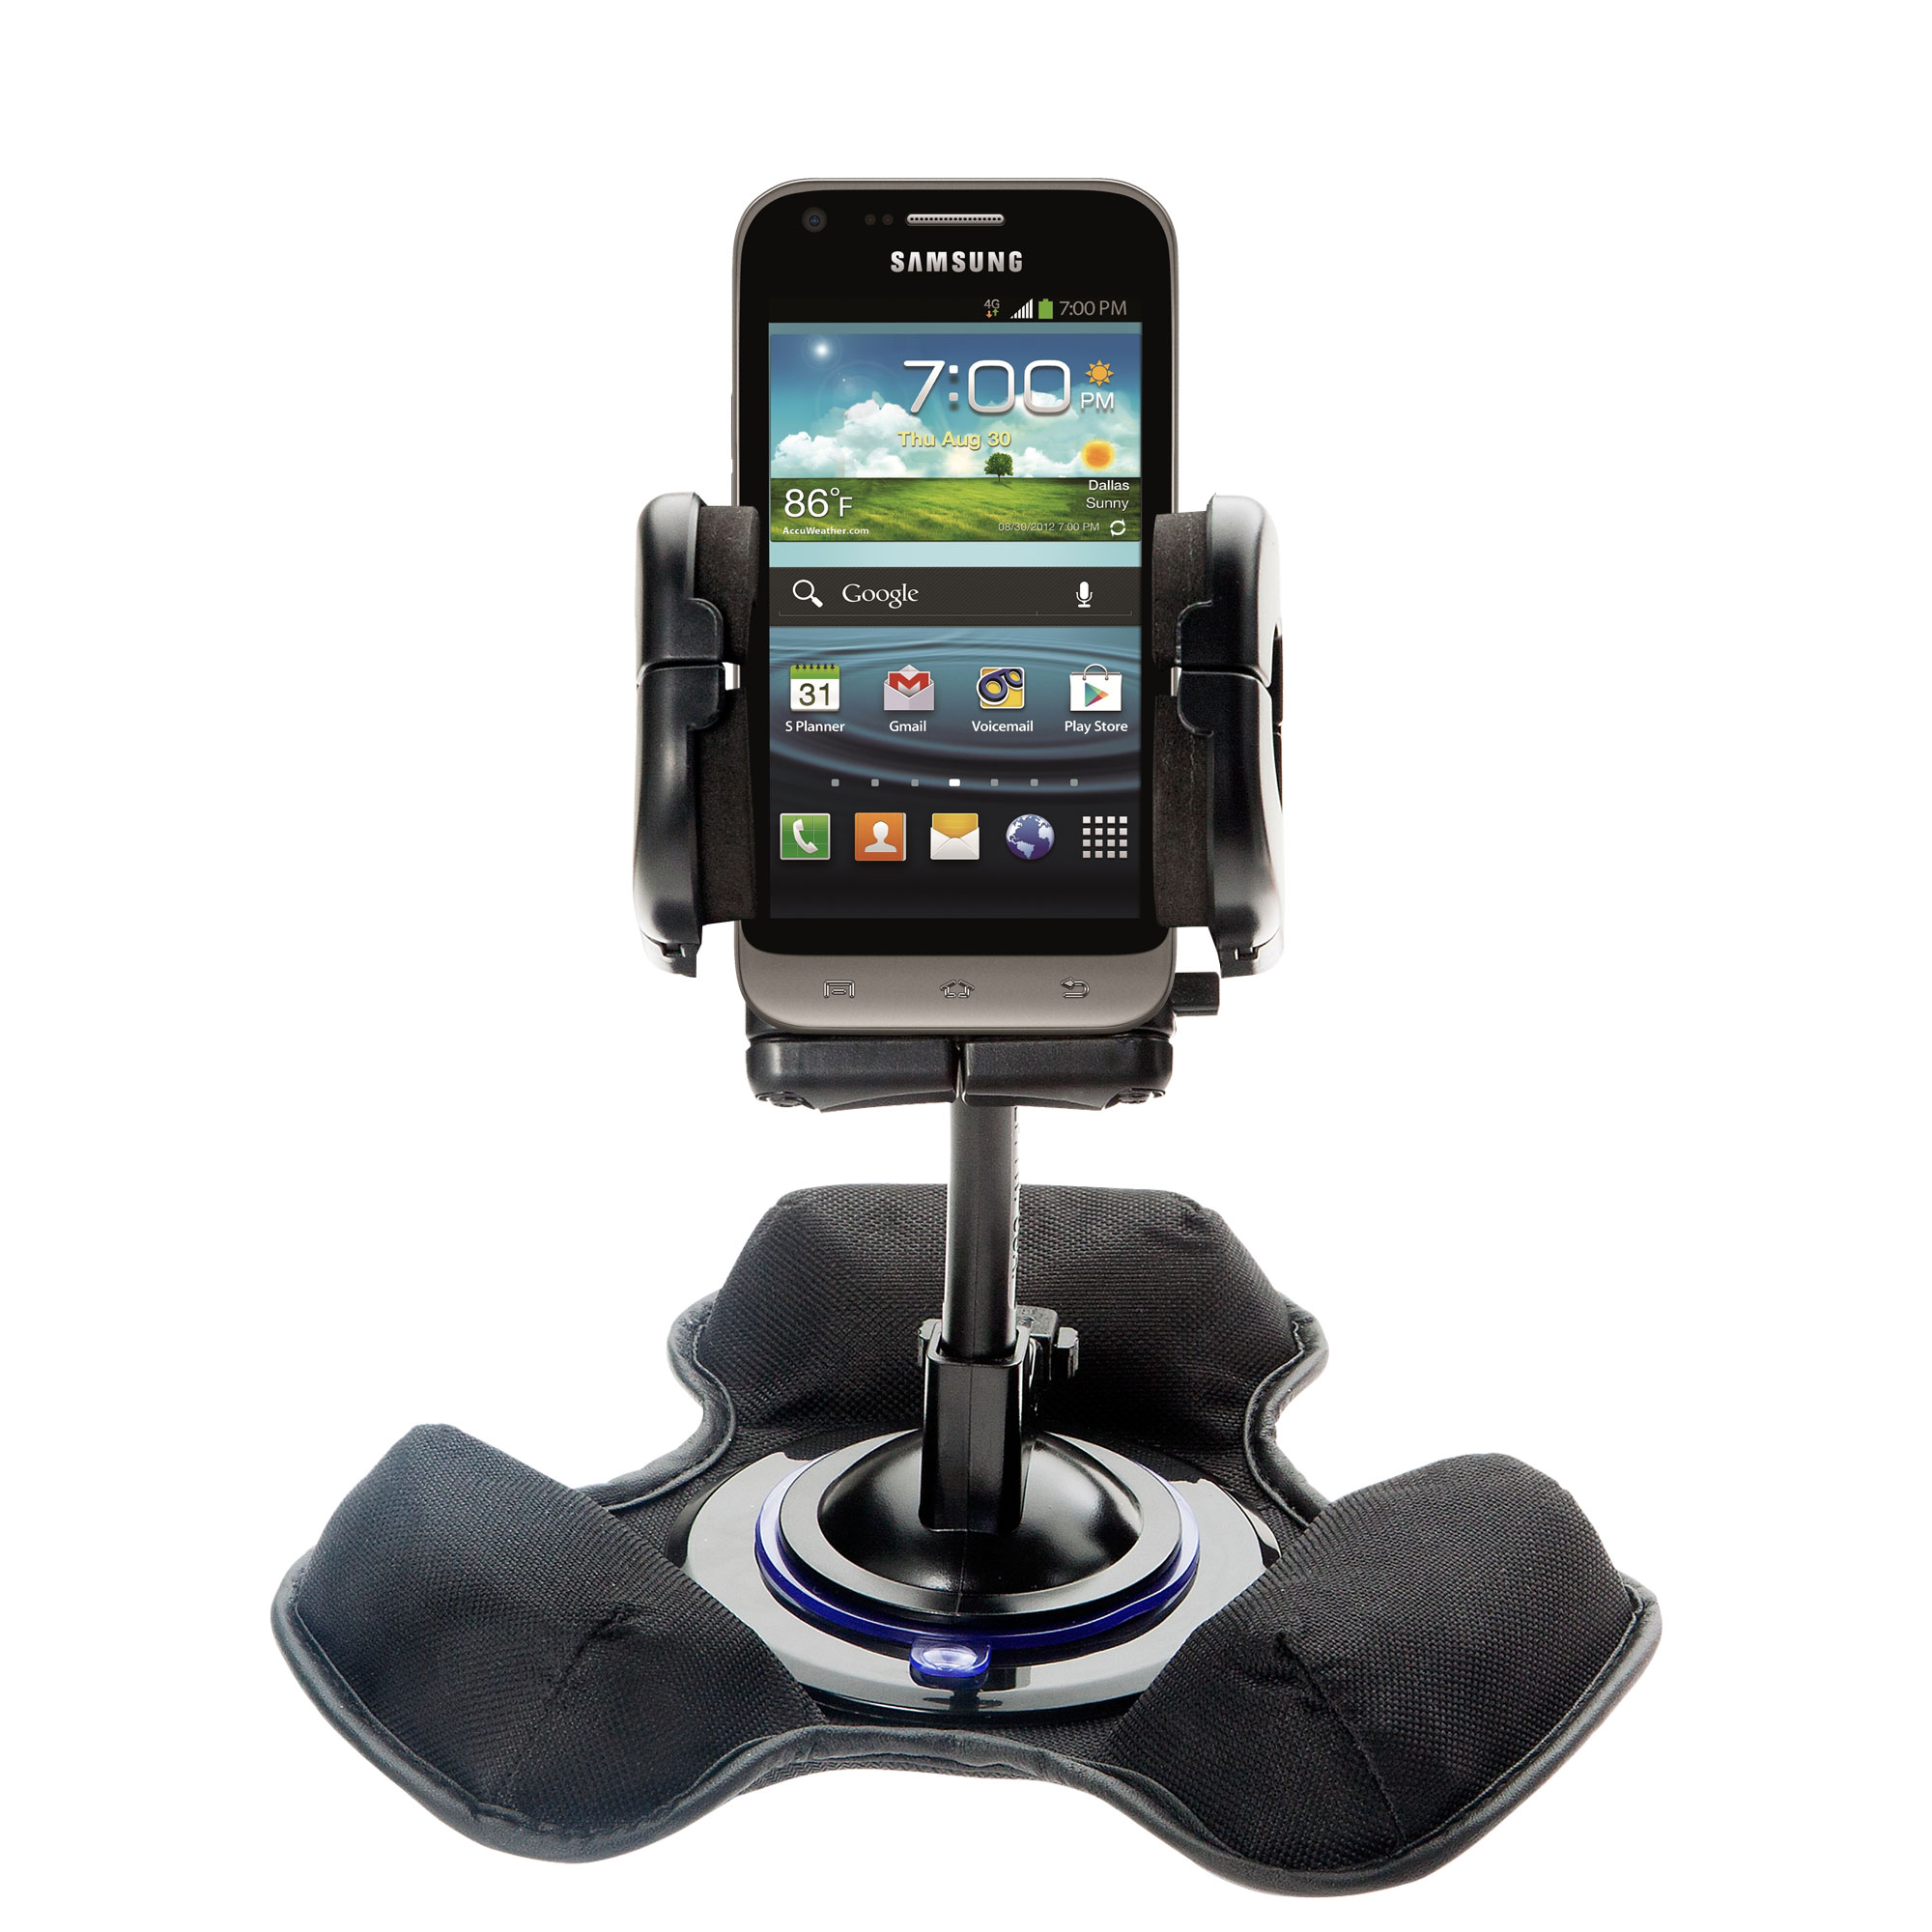 Dash and Windshield Holder compatible with the Samsung Galaxy Victory